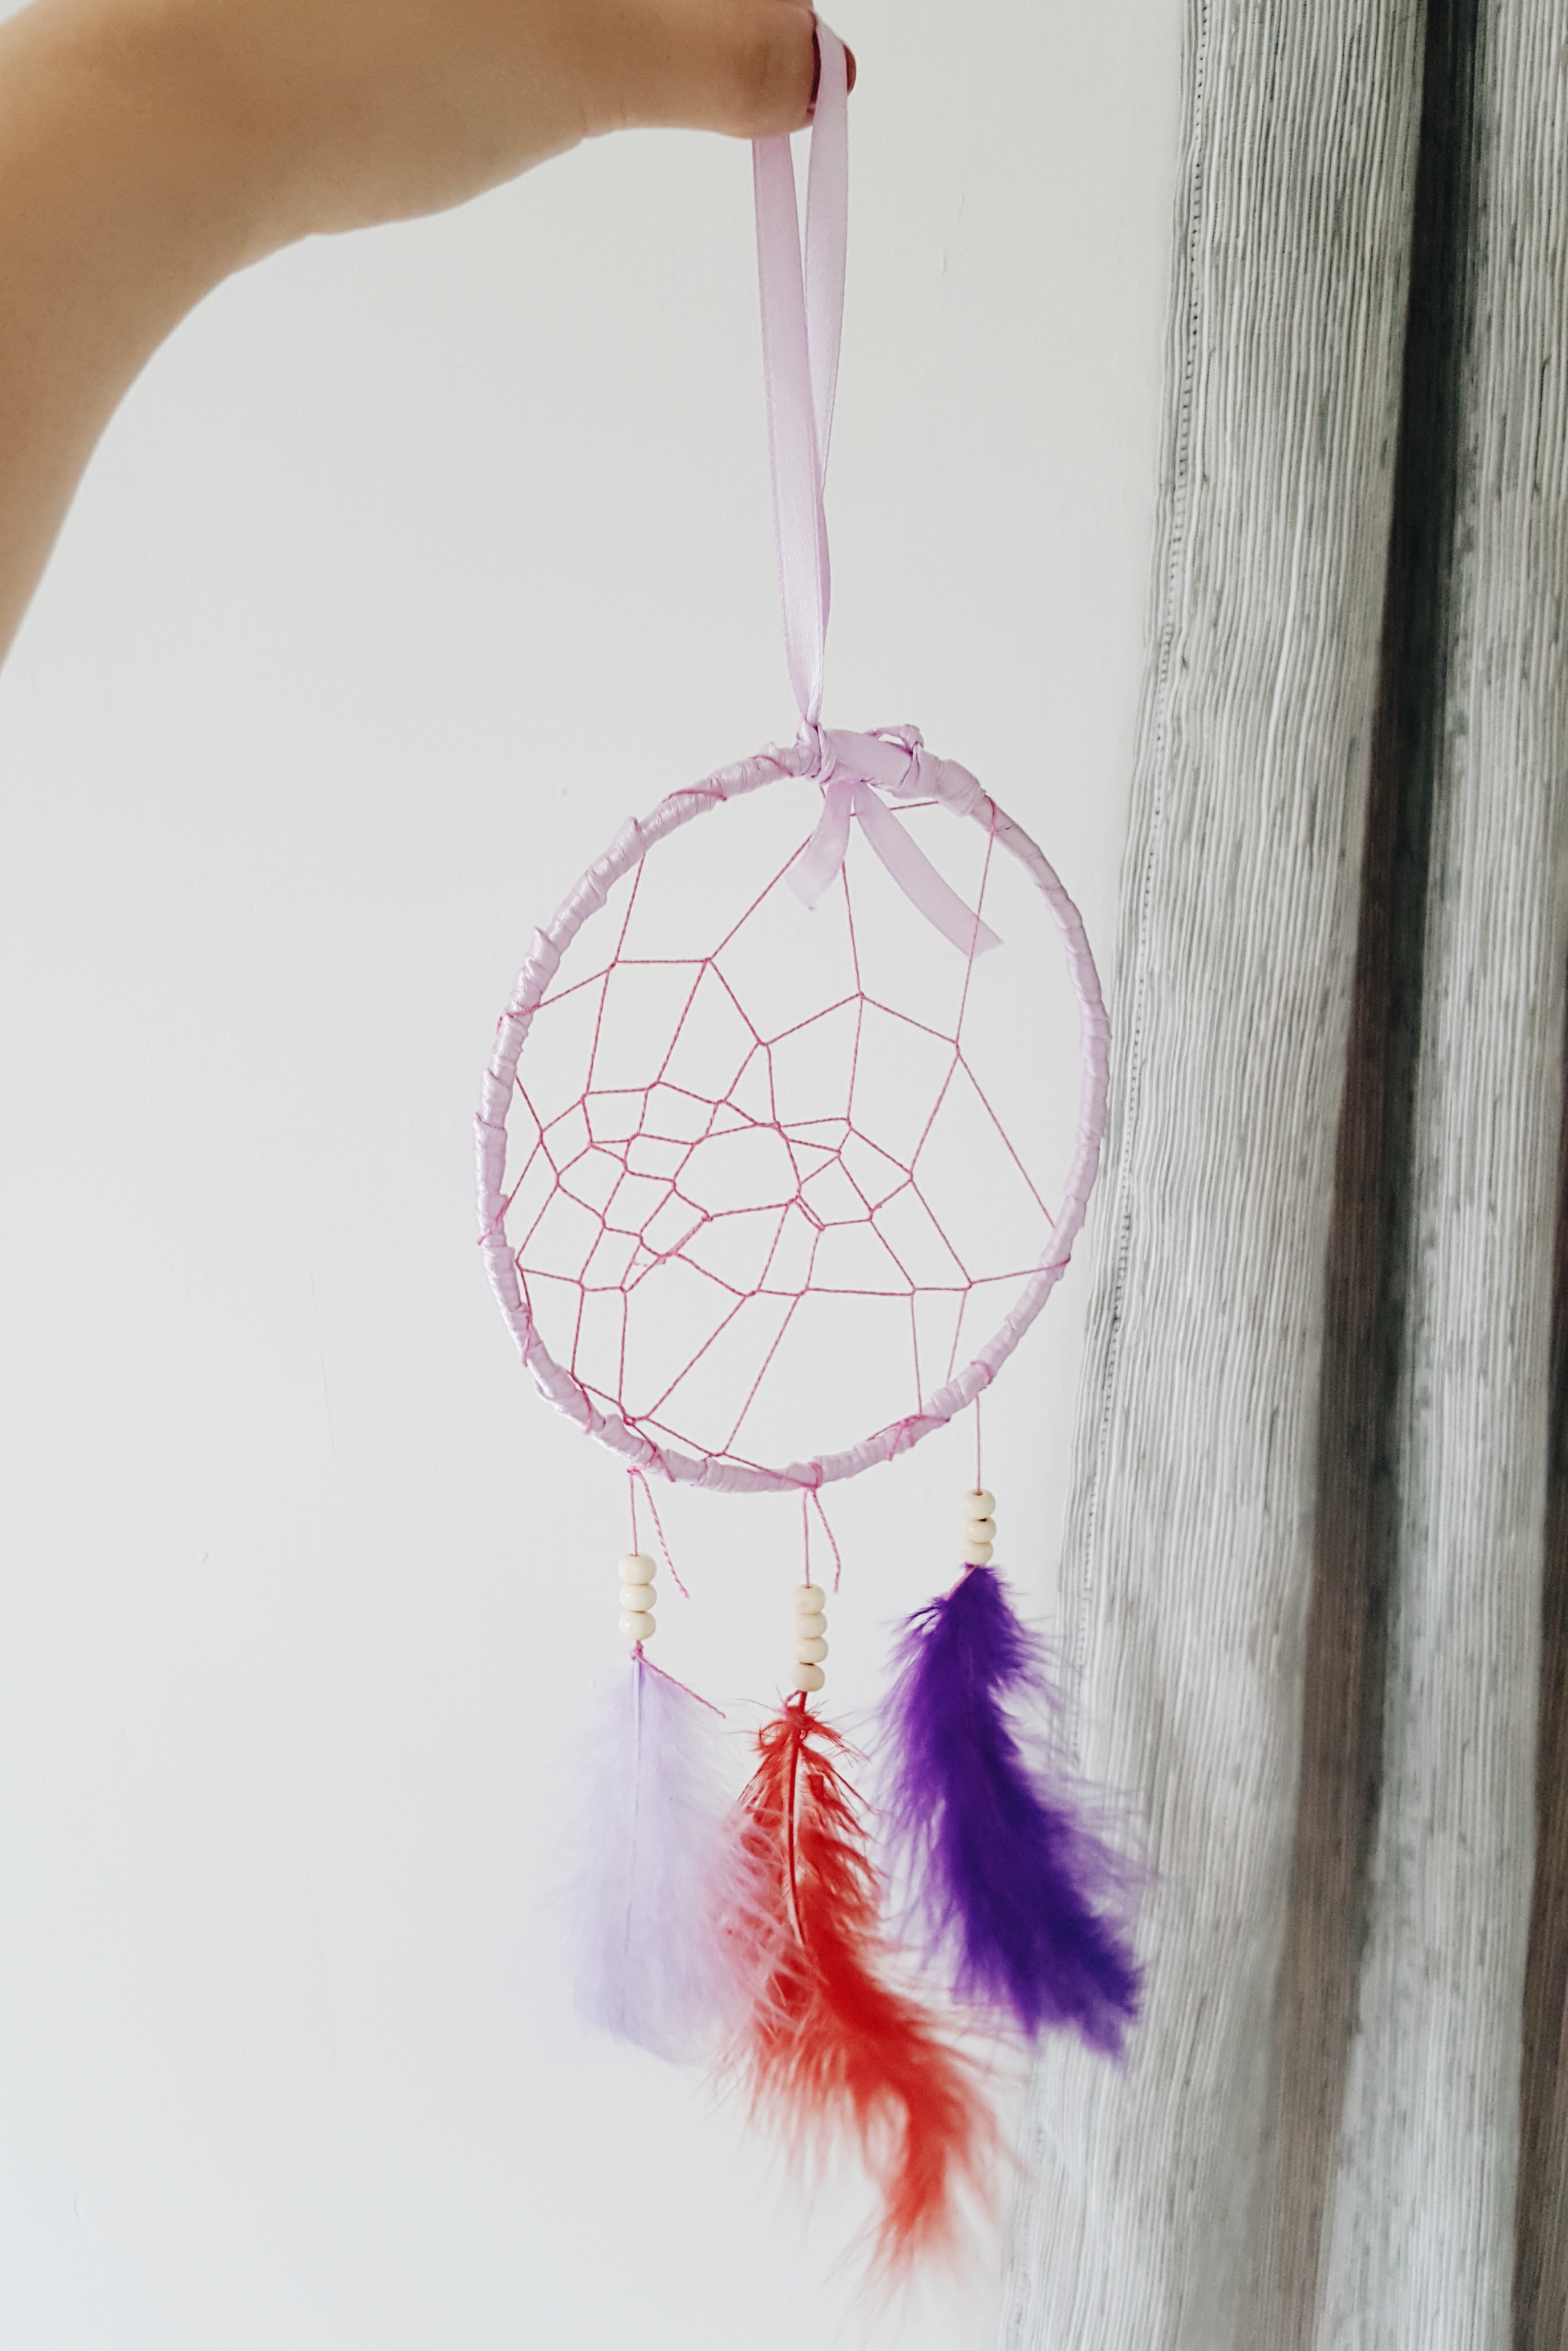 Daisybutter - Hong Kong Lifestyle and Fashion Blog: Effie Box review, monthly crafting subscription, how to make a dreamcatcher